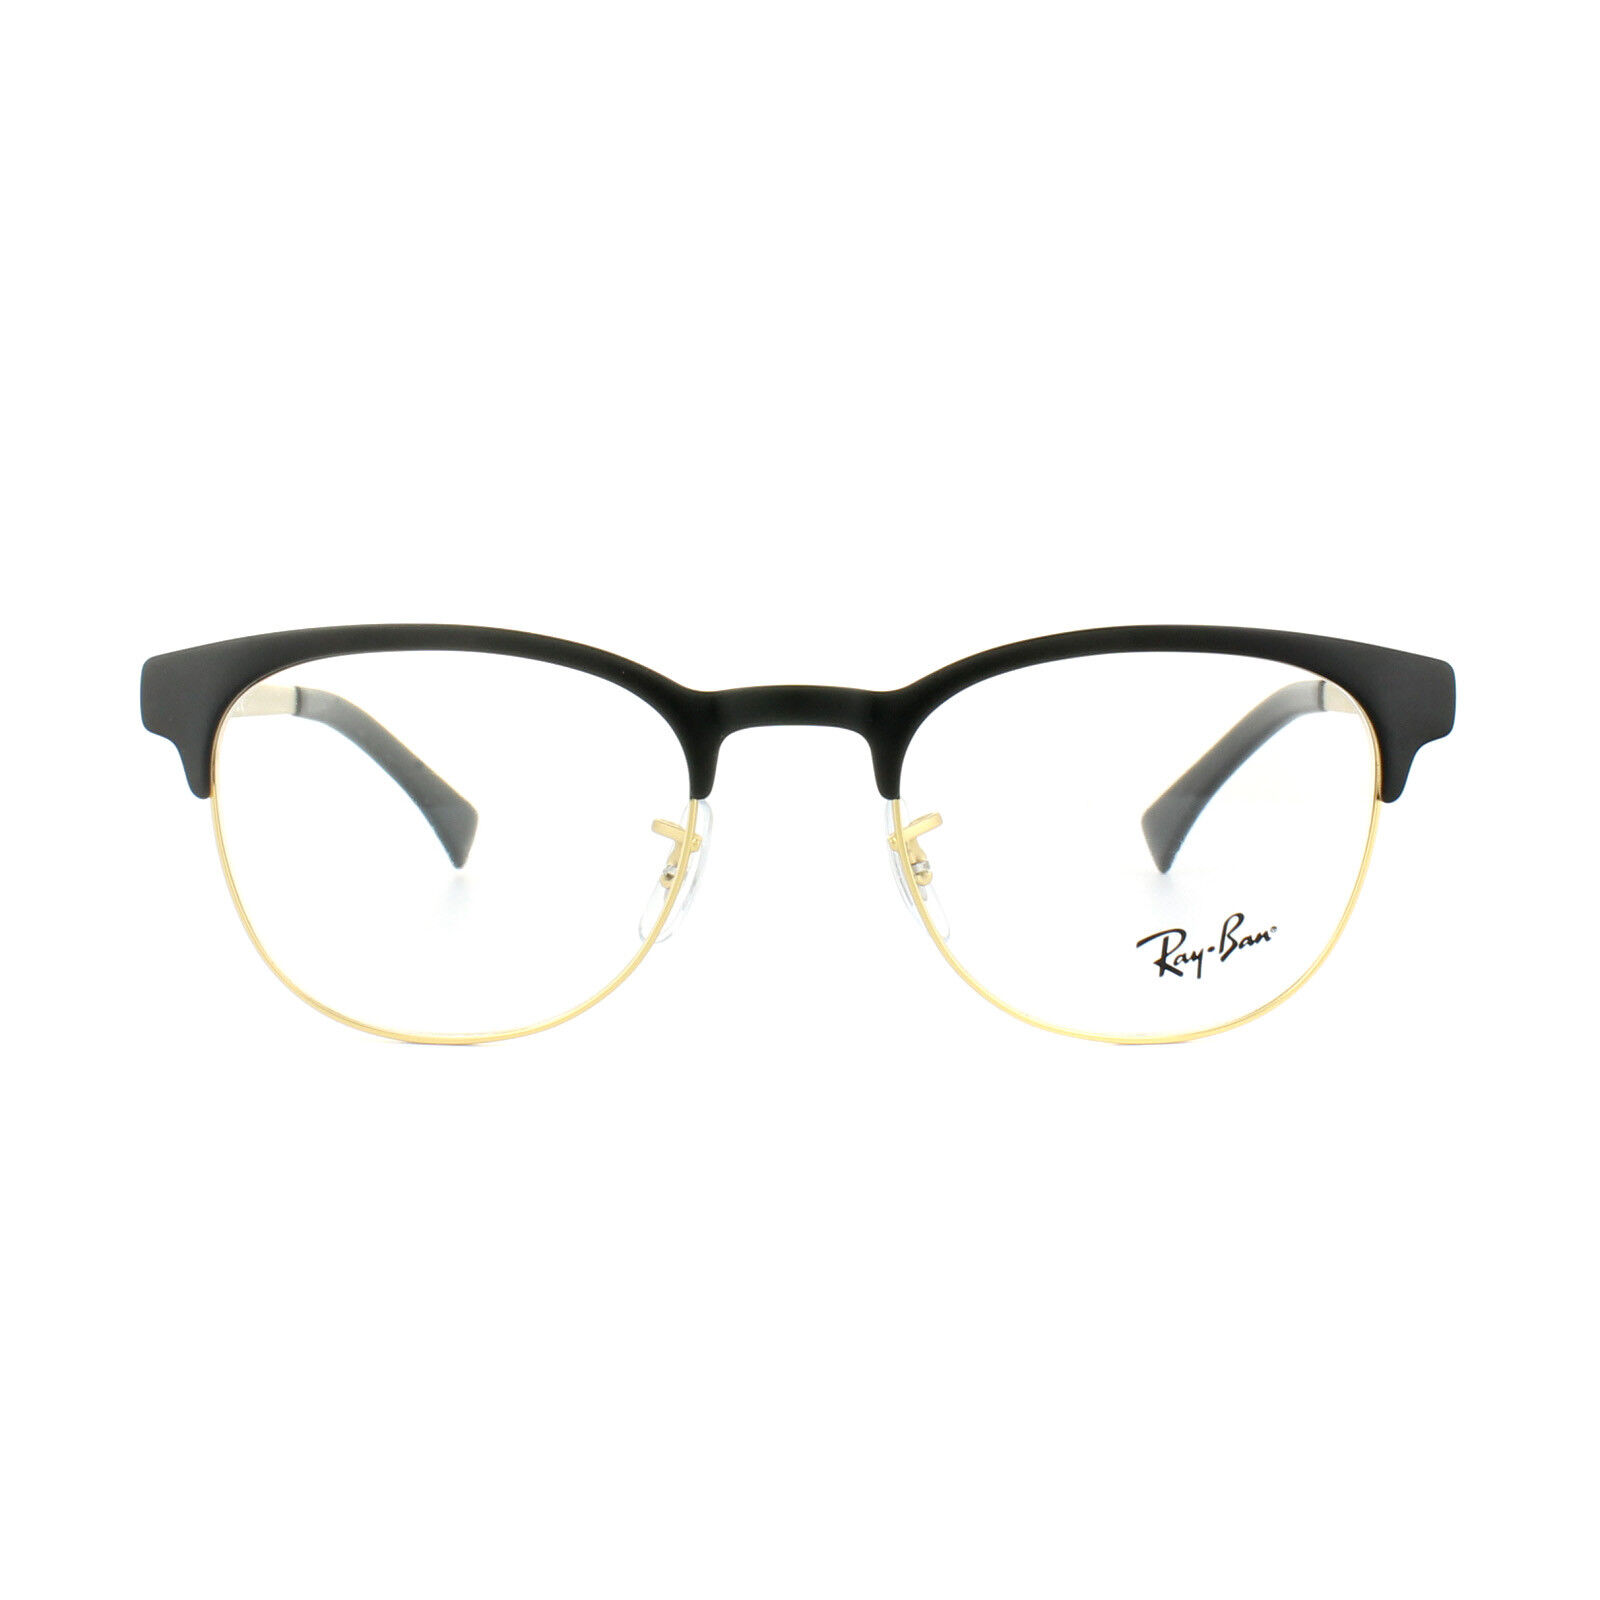 45d37058937 Ray Ban Rx6317 2833 Black and Matte Gold Round Metal Clubmaster ...